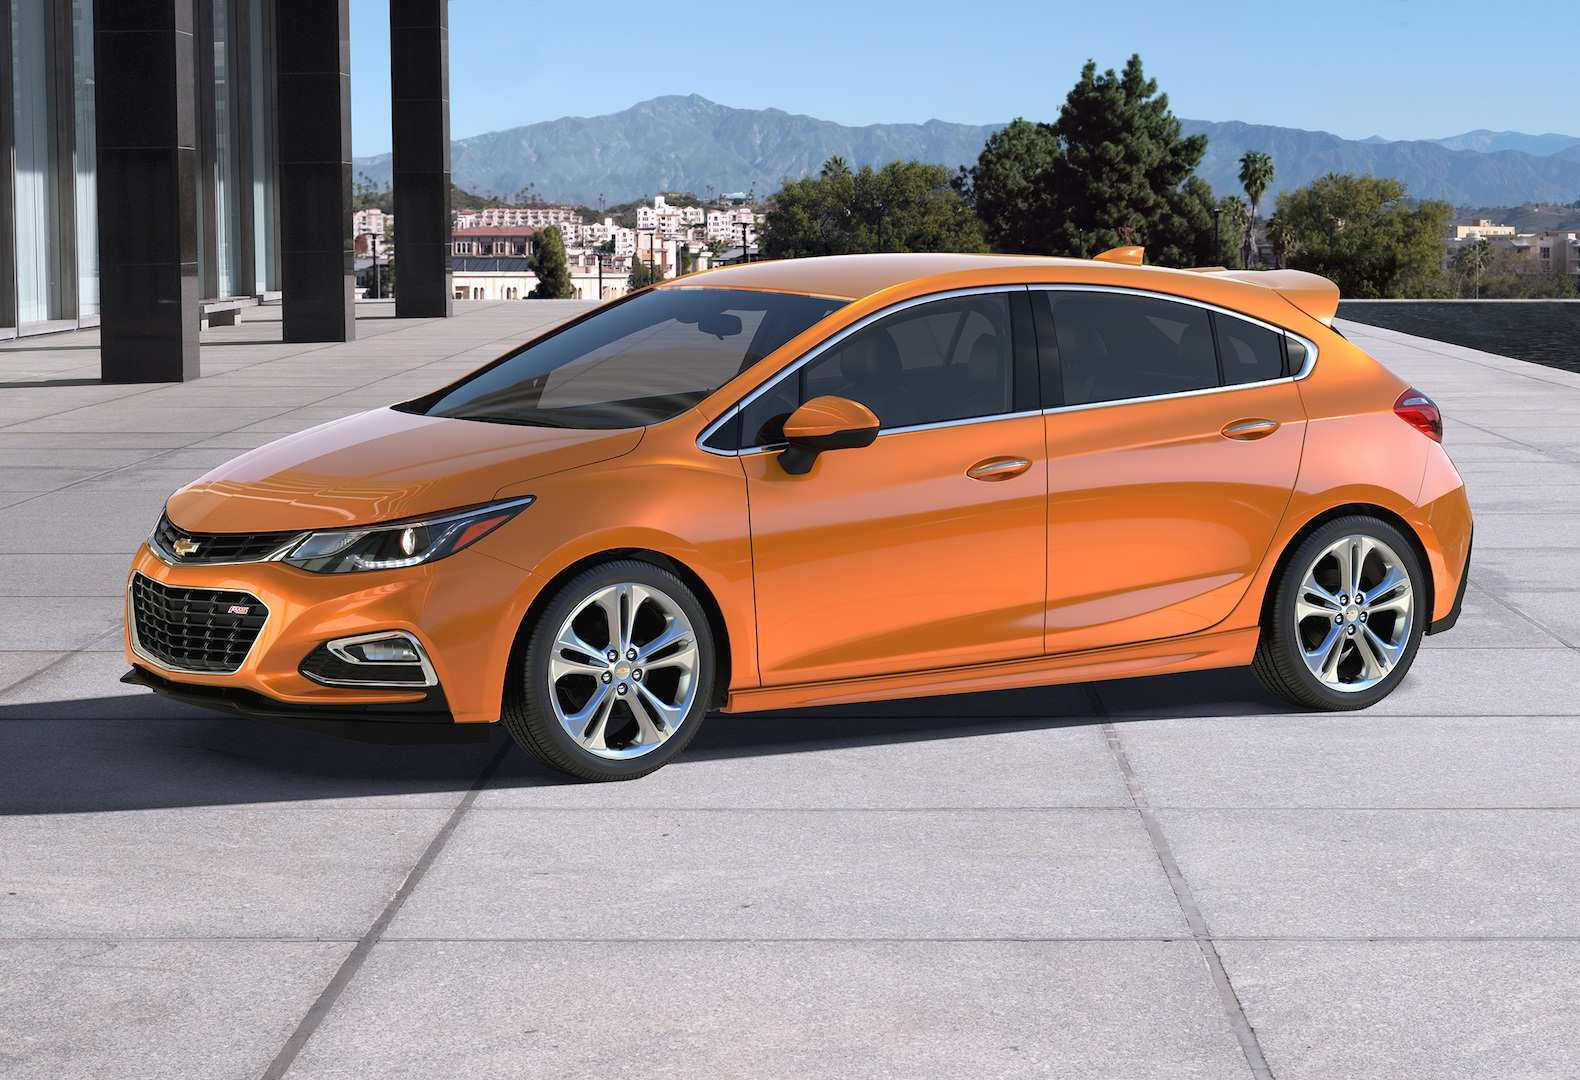 25 Best Review 2020 Chevrolet Cruze Reviews for 2020 Chevrolet Cruze